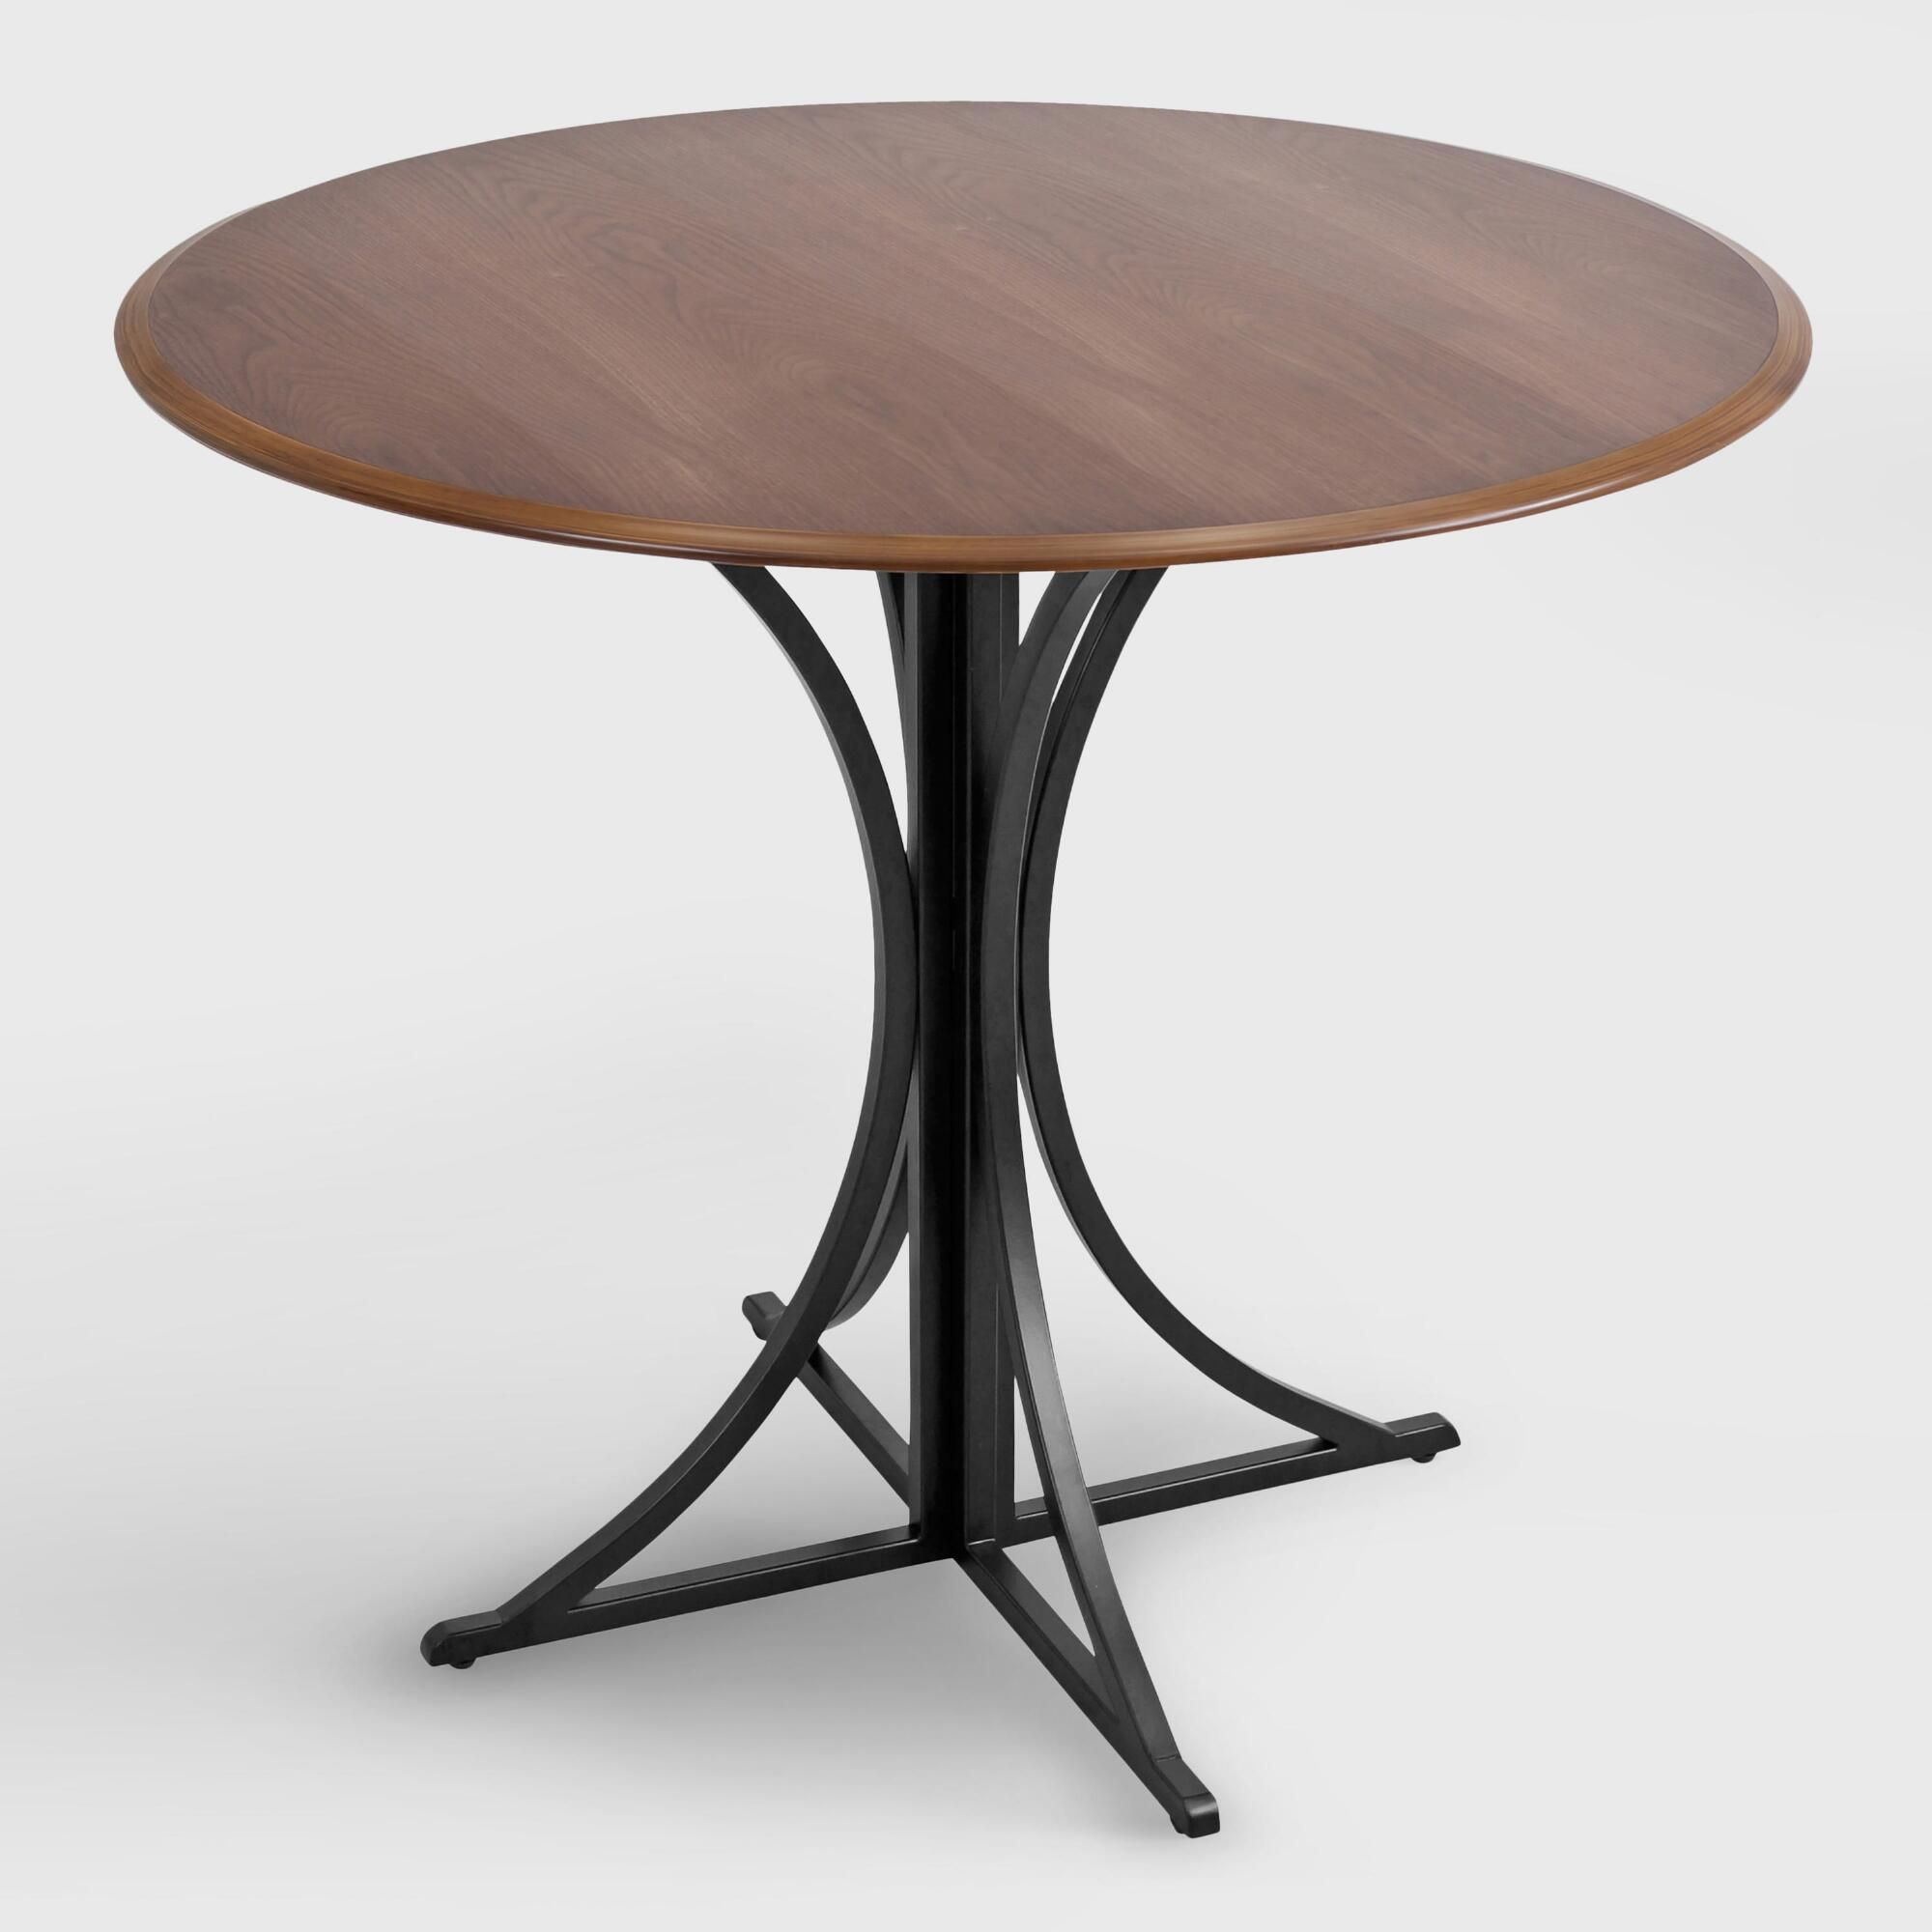 for dynamic look your dining space with this contemporary crate and barrel marilyn accent table featuring square legs tennis rubber west elm tree elephant chair kitchen gallerie